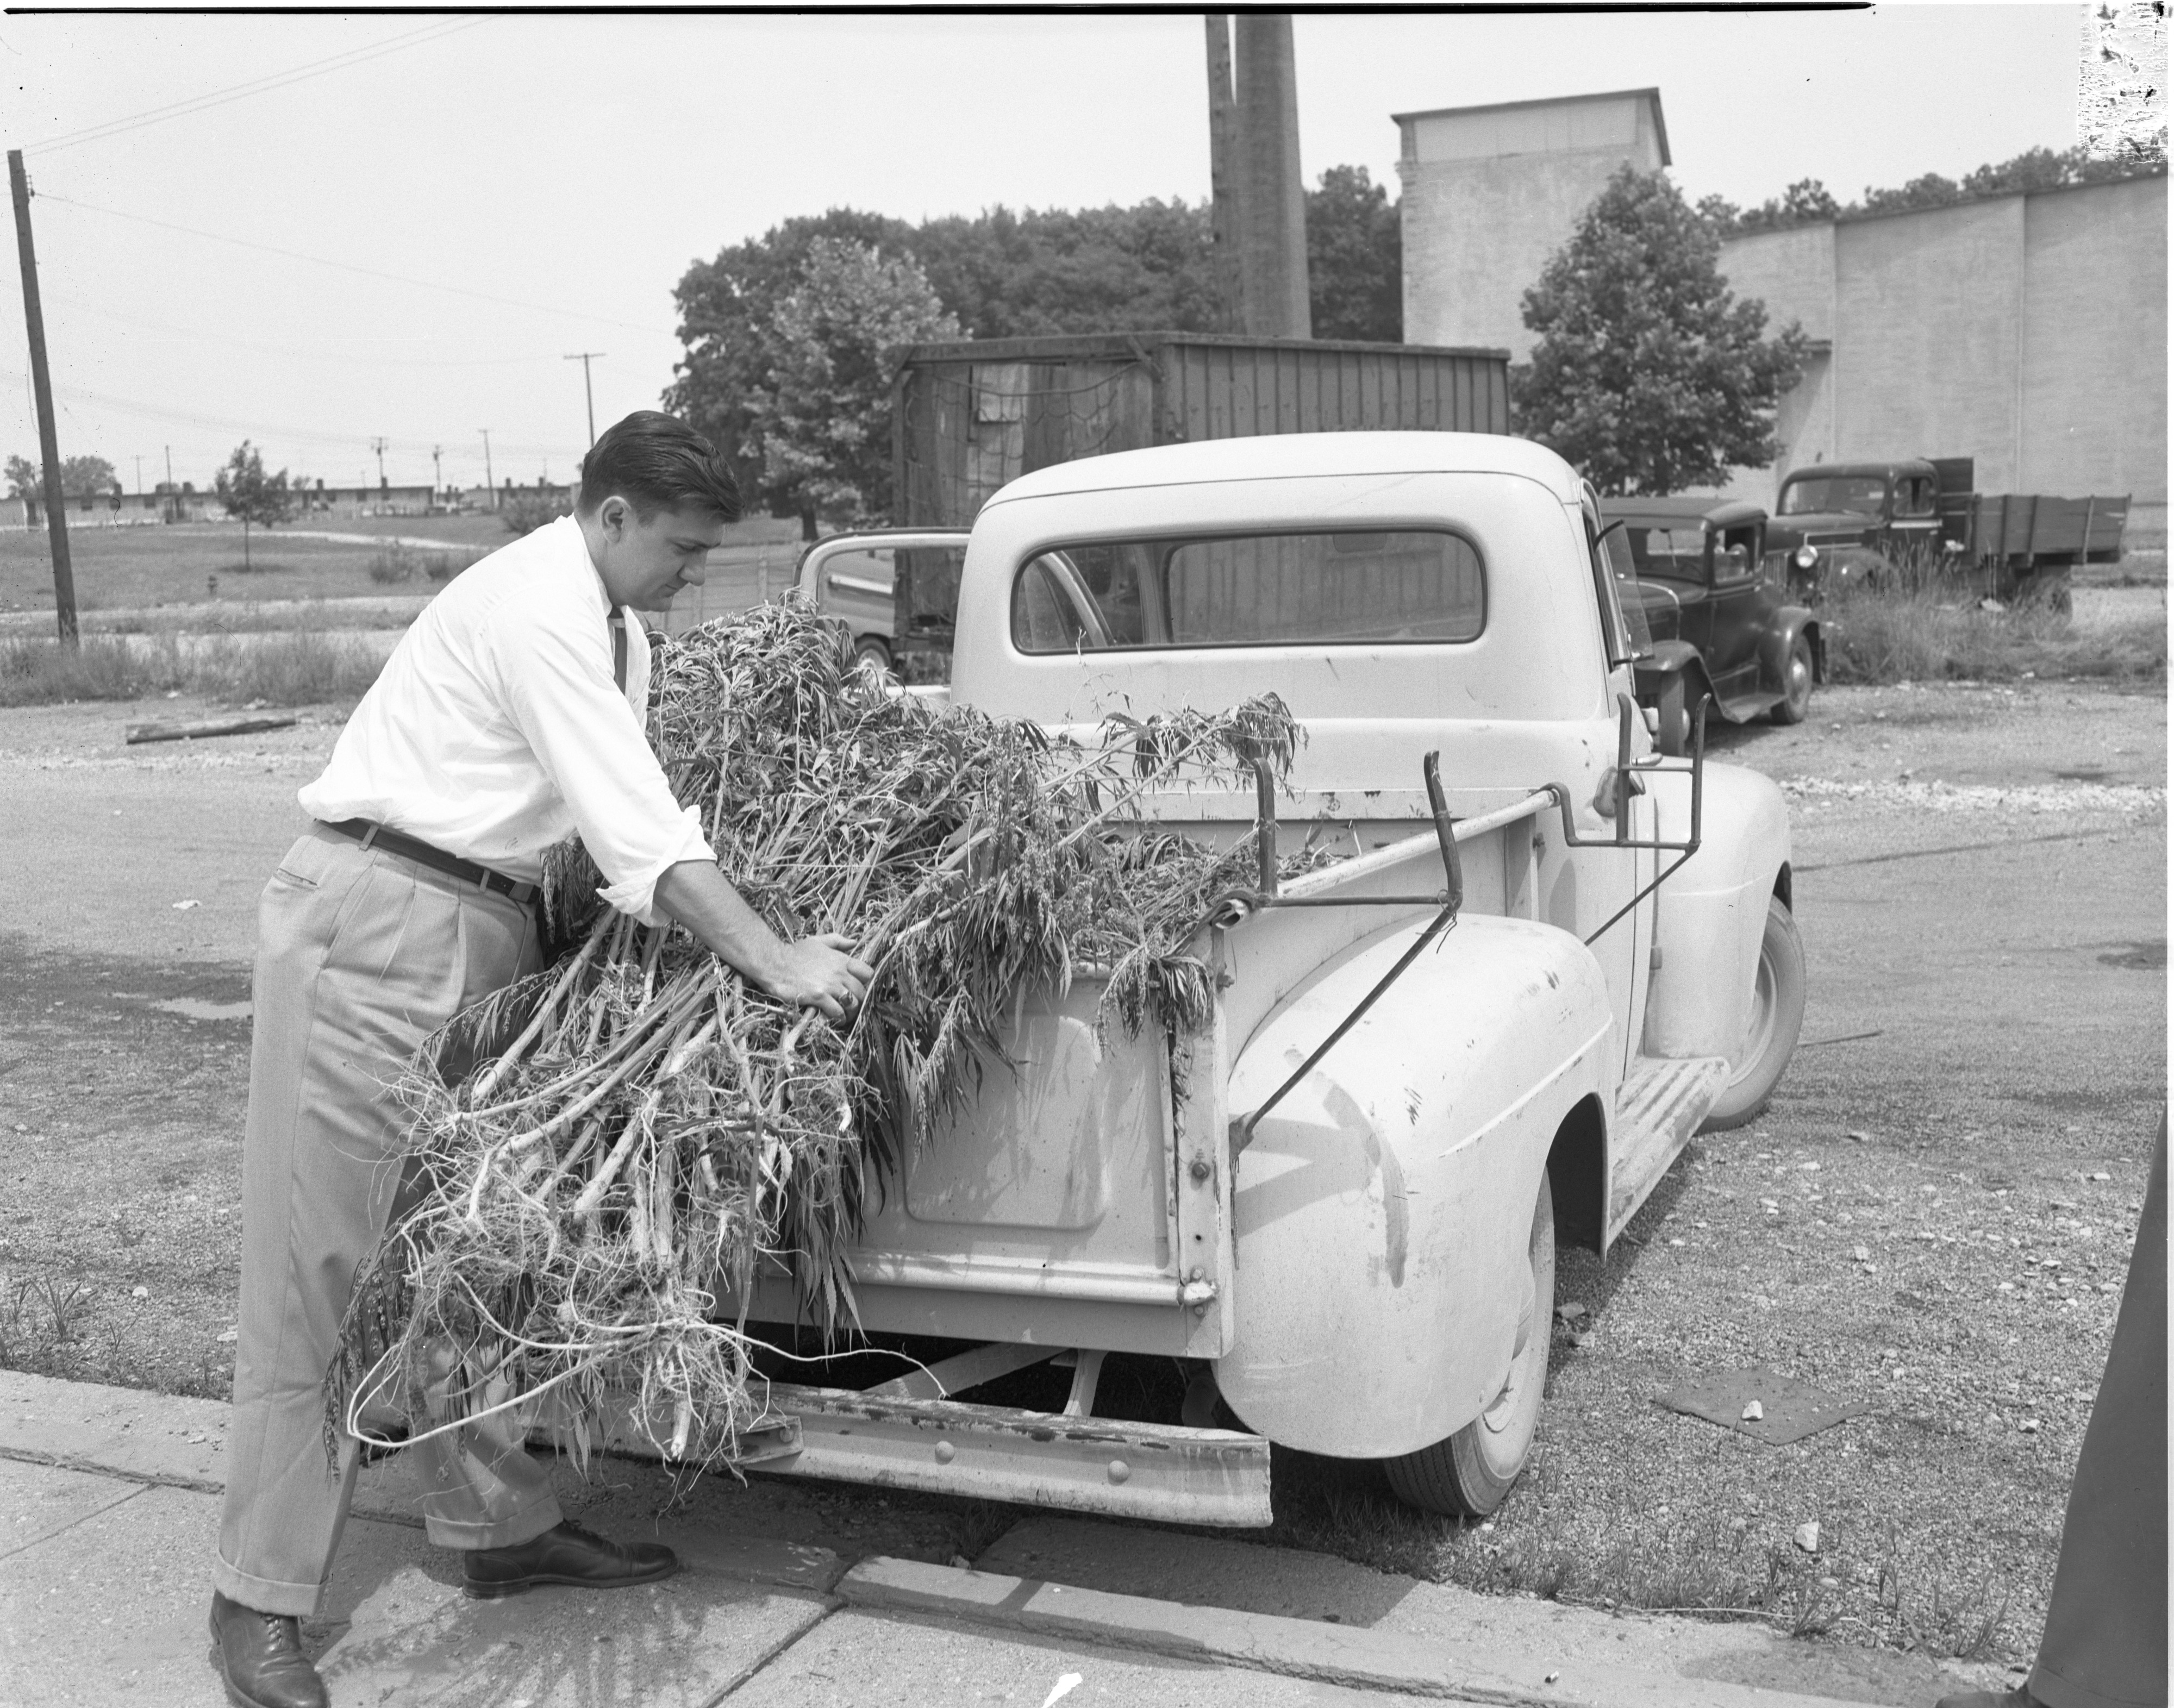 Detective Sgt. Melvin Fuller With Confiscated Marijuana Plants, July 1954 image